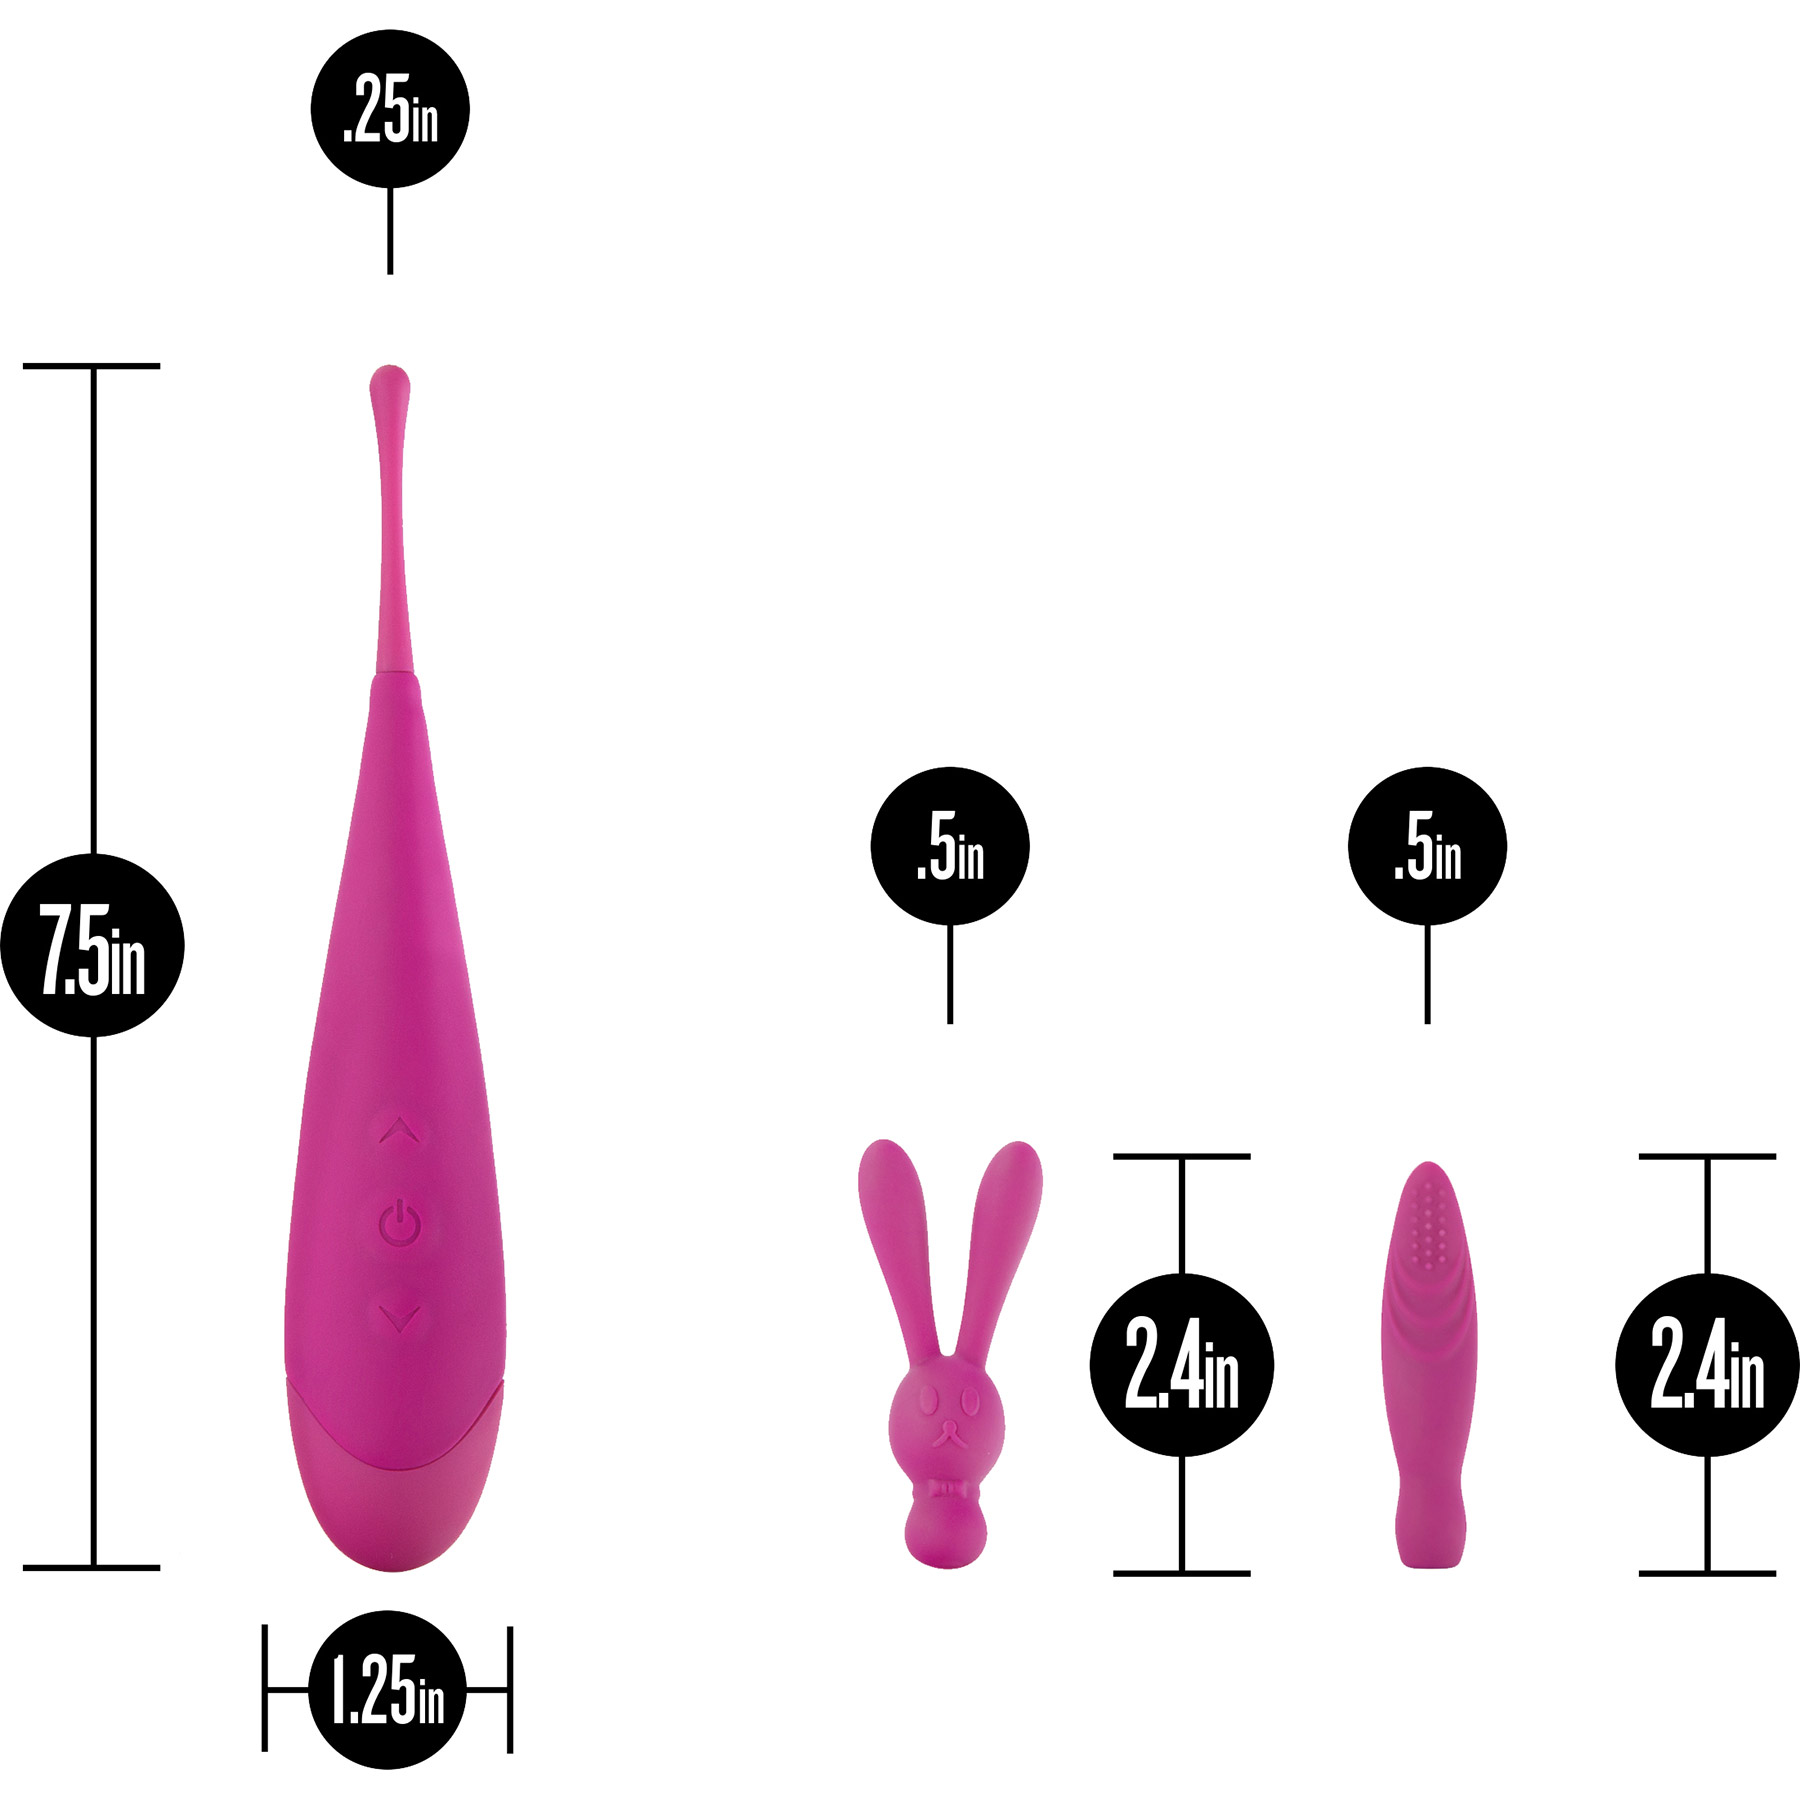 Noje Quiver Intensely Stimulating Clitoral Vibrator - Measurements